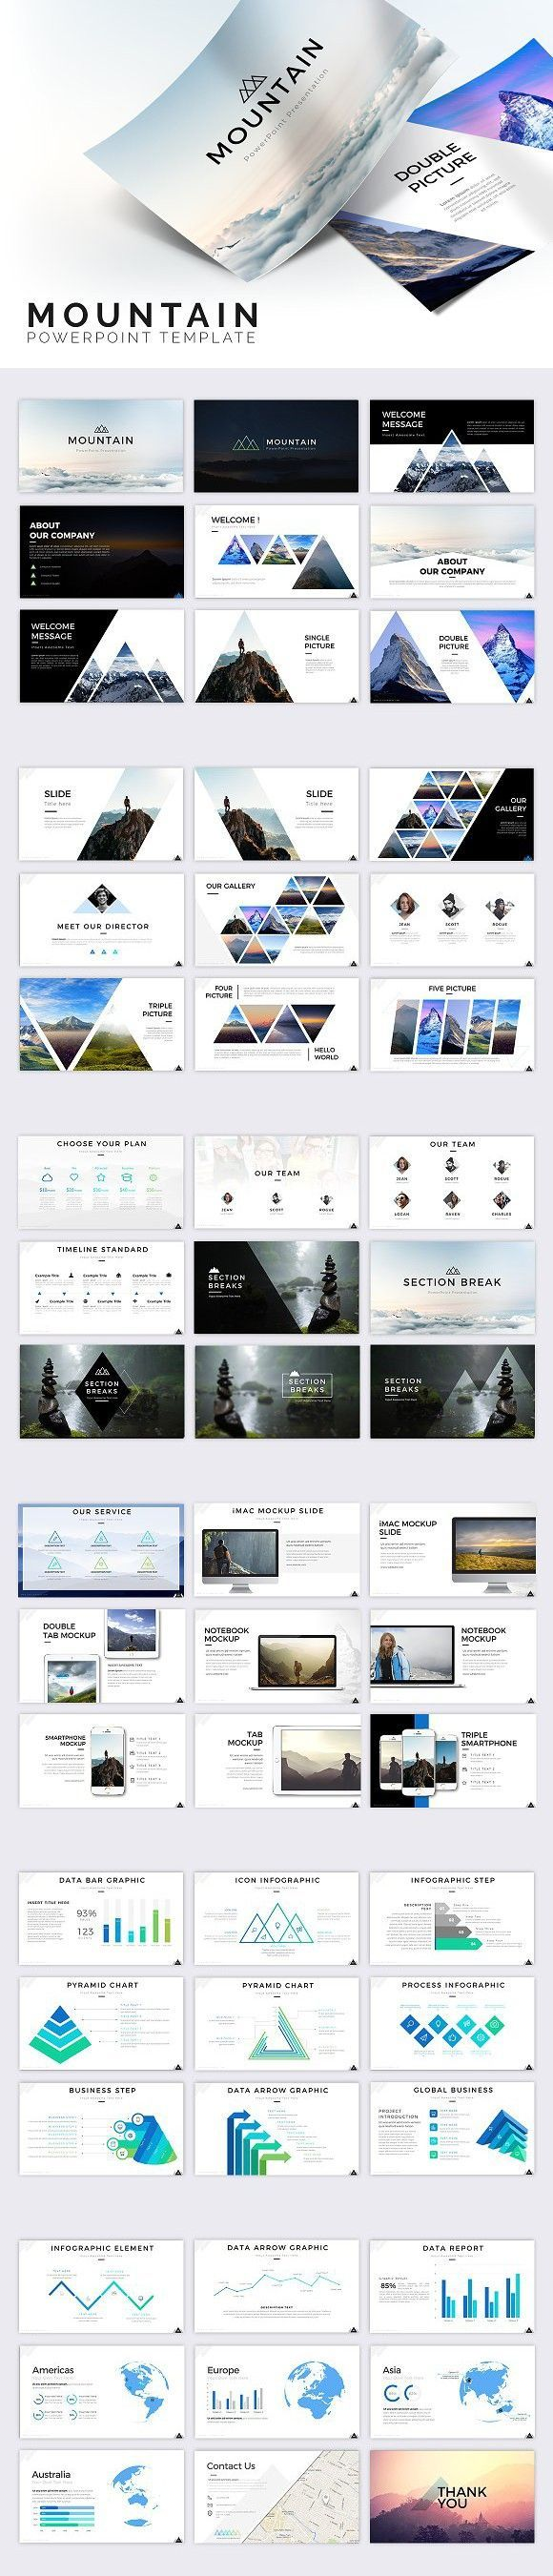 Mountain Powerpoint Template Presentation Templates  Design Ppt